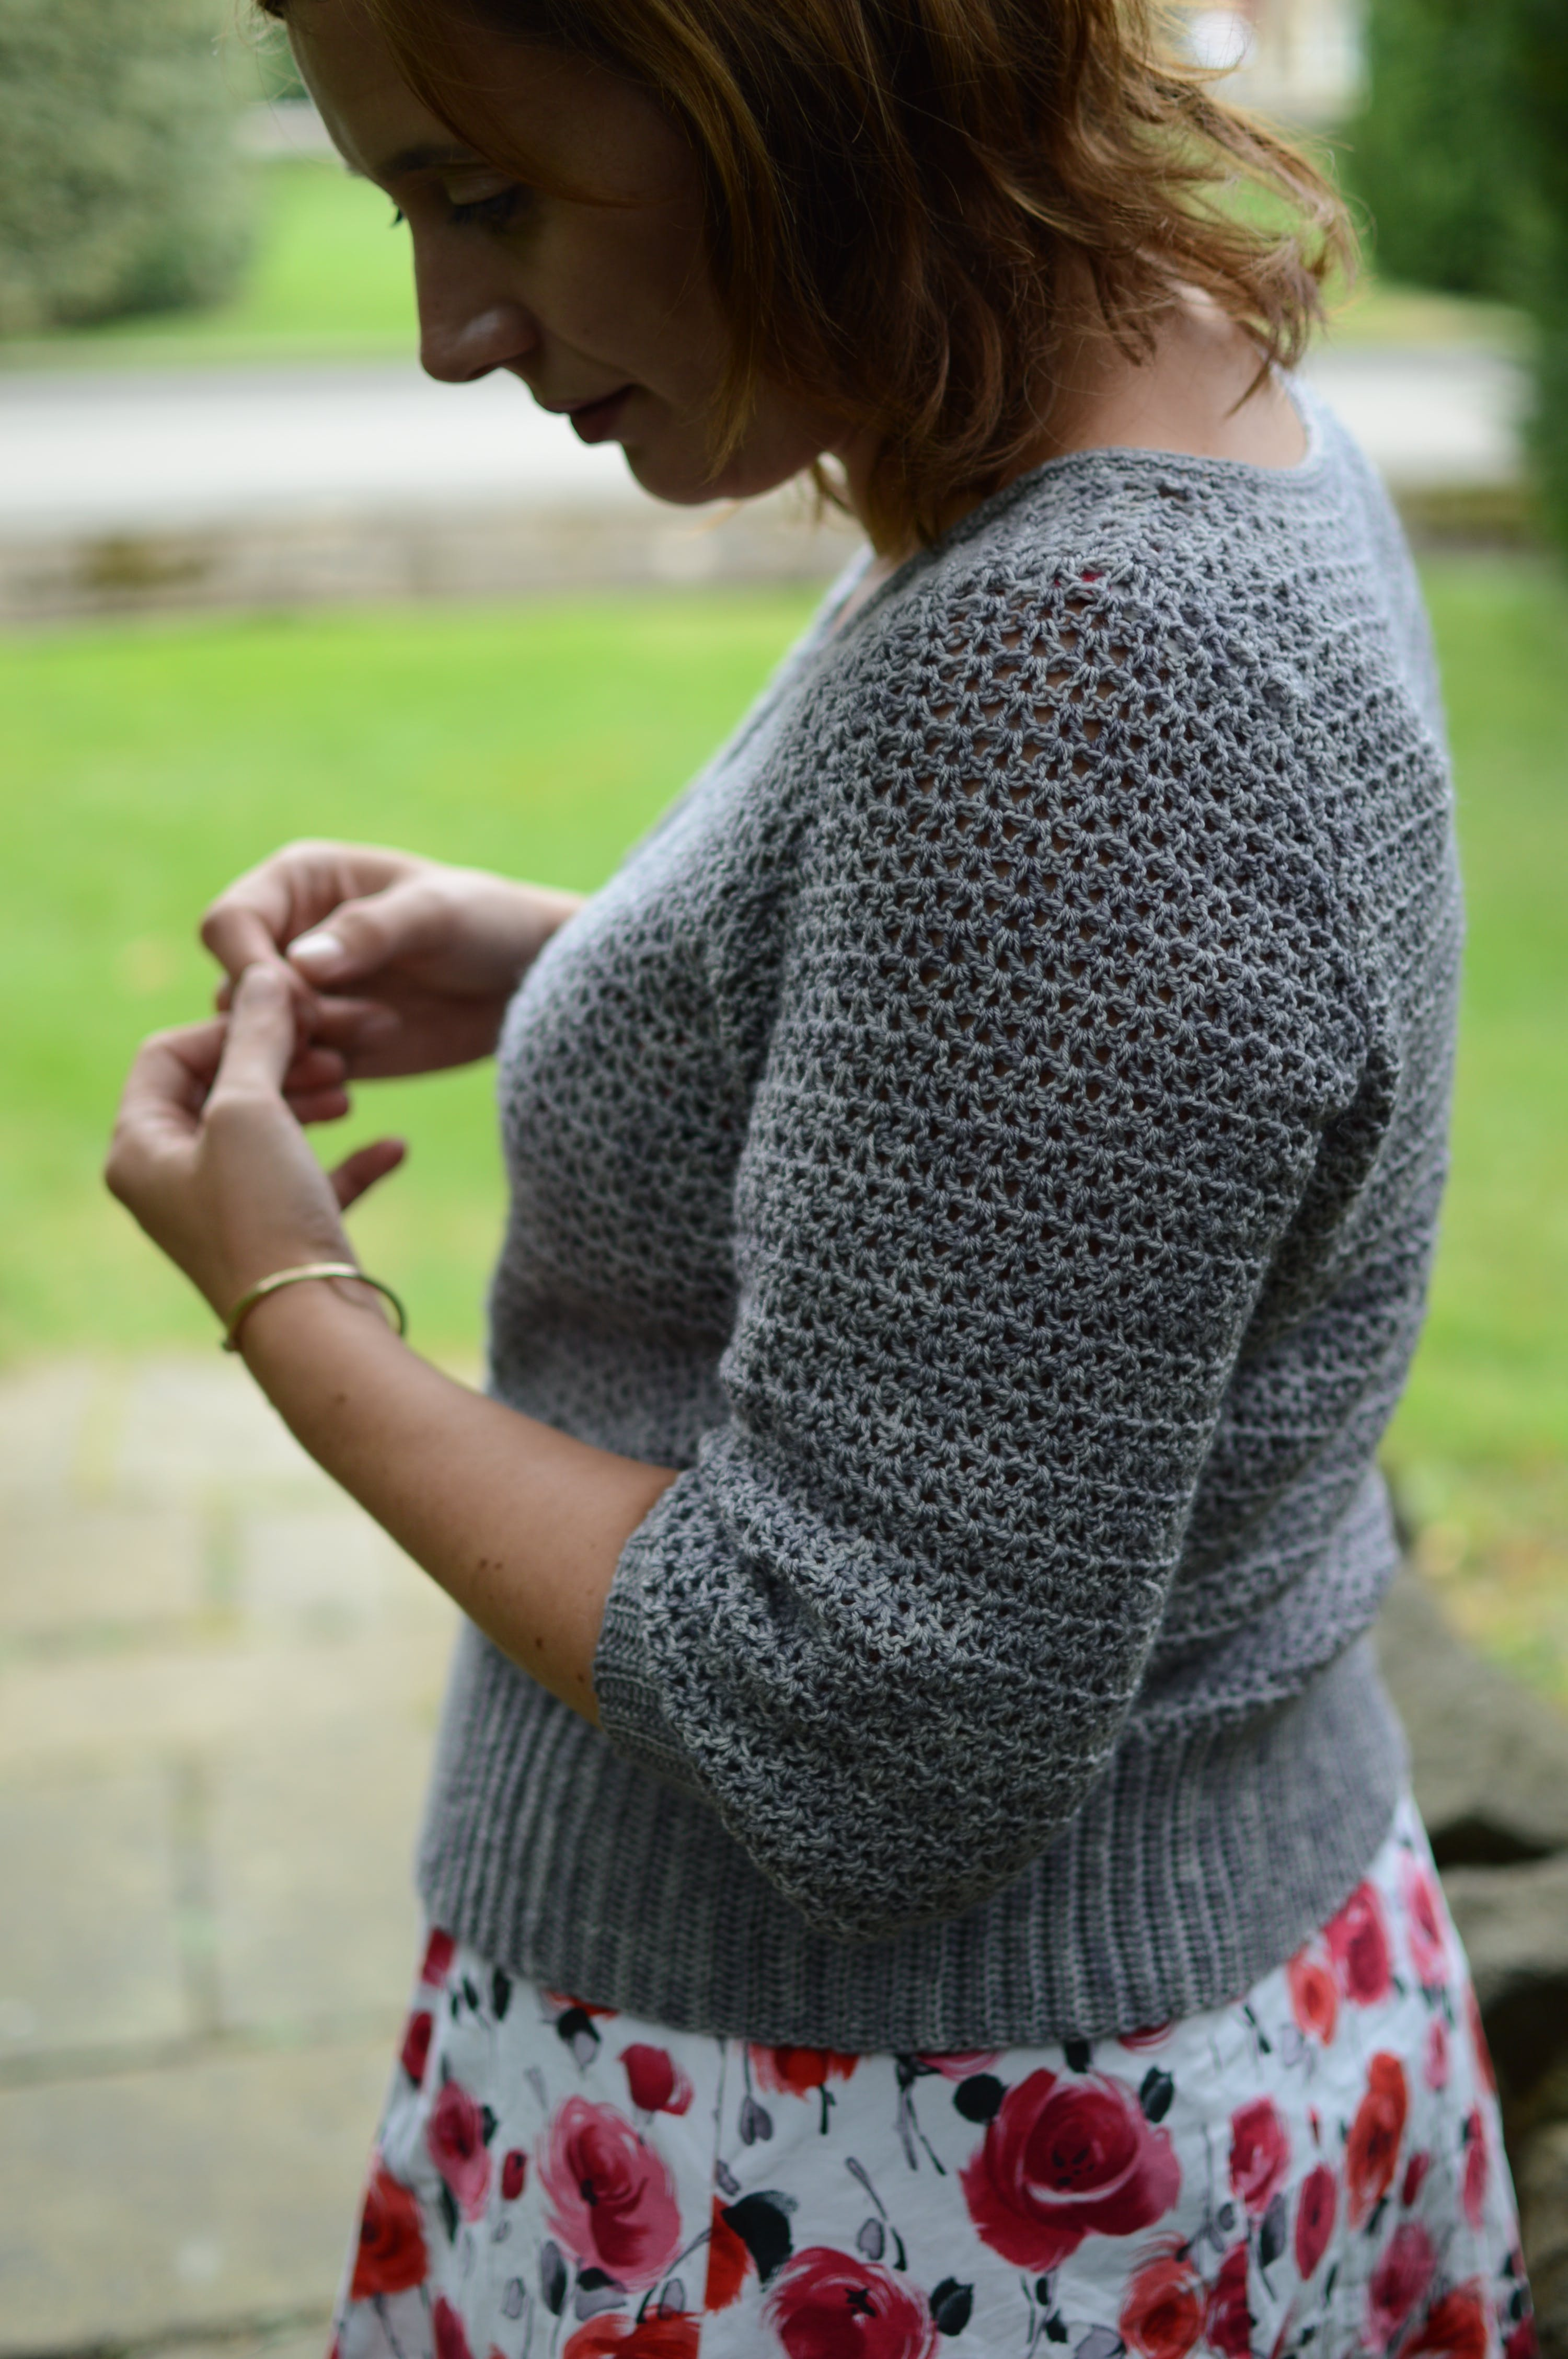 joanne wears a grey Alyssium cardigan, she is turned to the side with shoulder visible, indestinct background